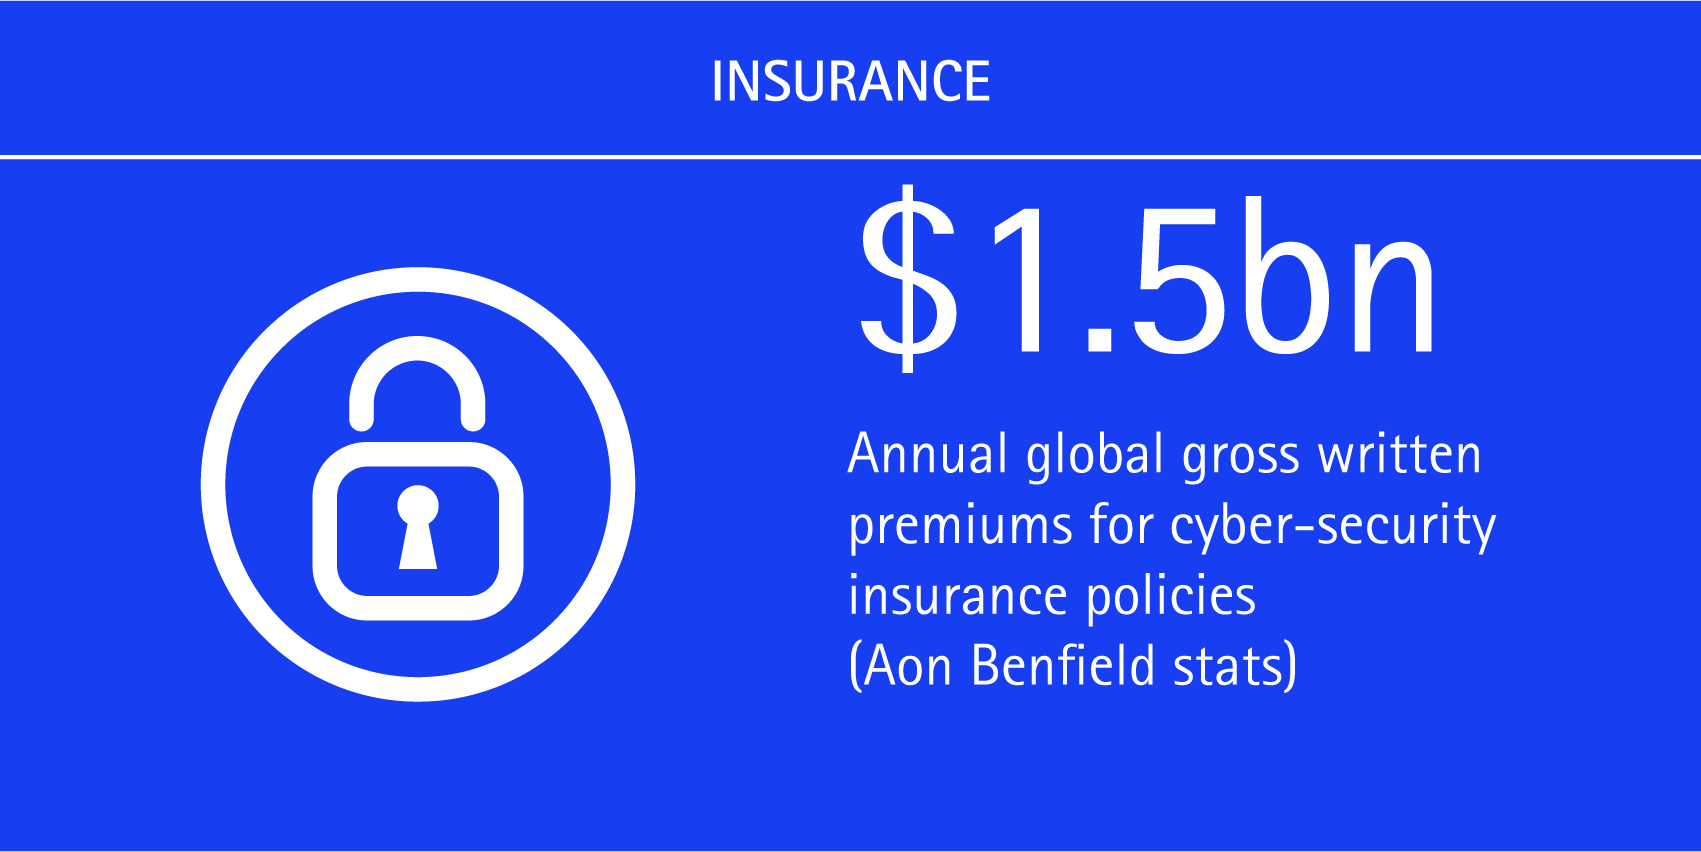 Insurers Face Soaring Cyber-Attack Costs